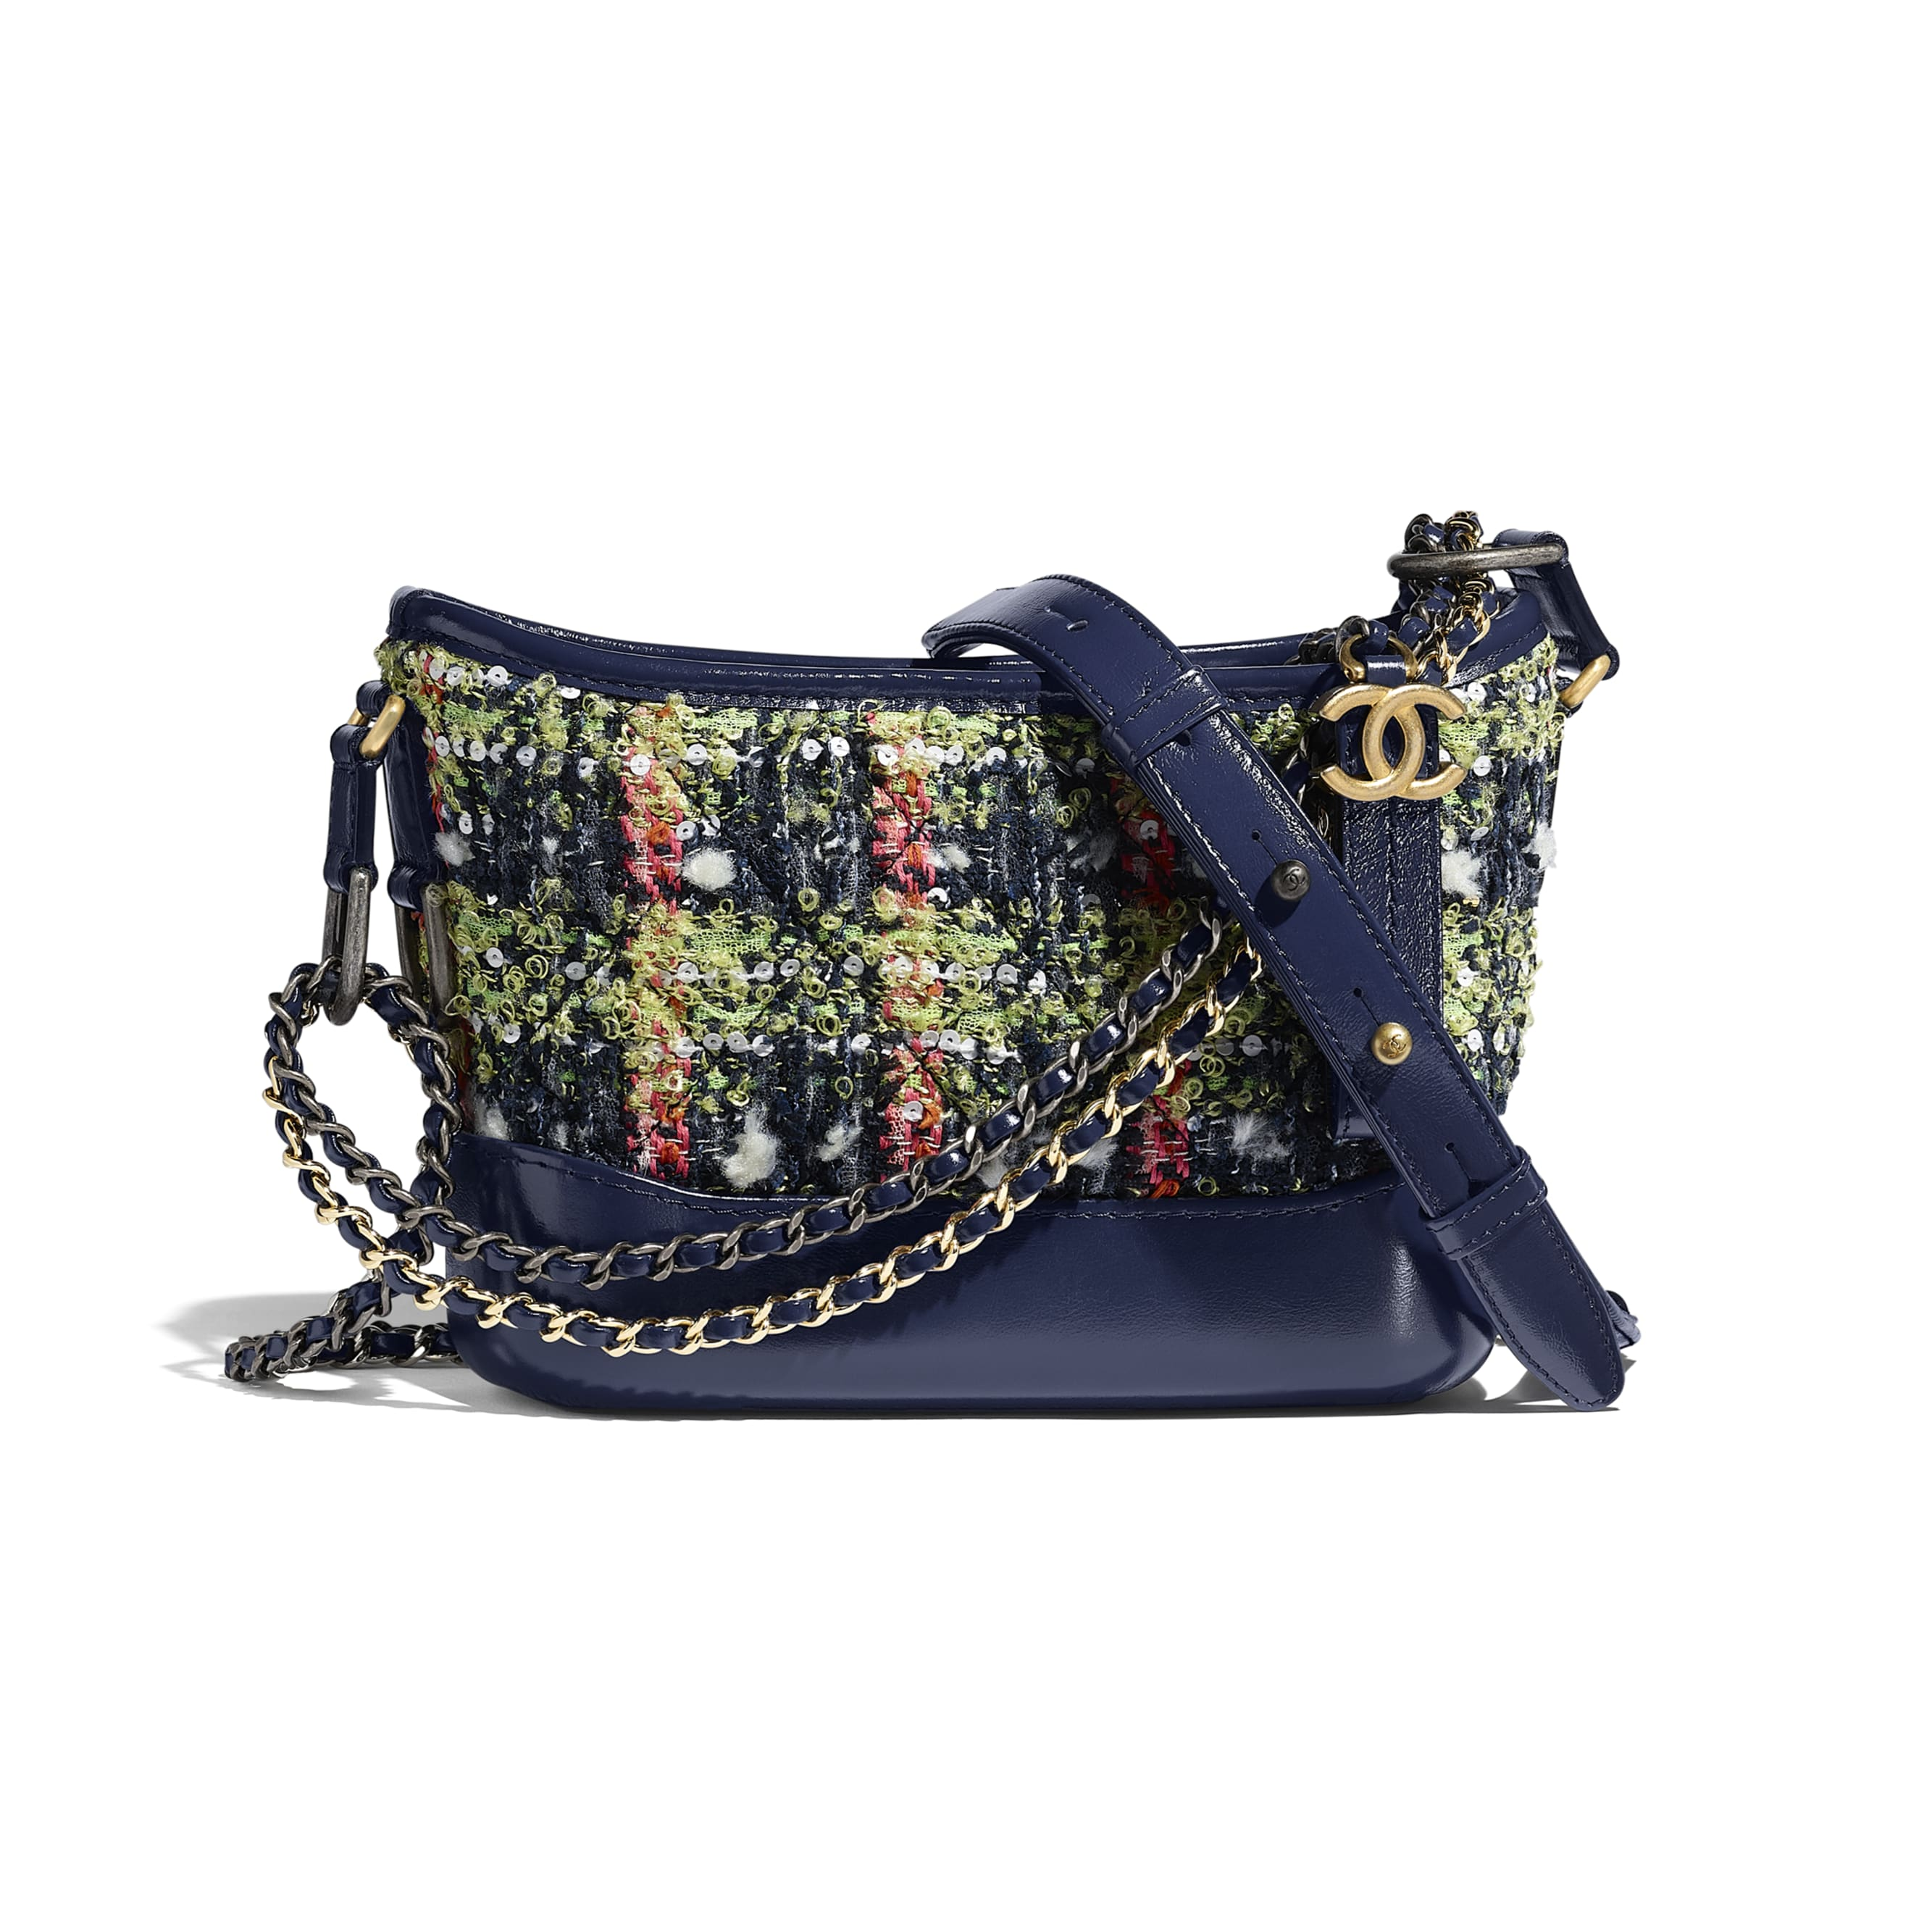 CHANEL'S GABRIELLE Small Hobo Bag - Navy Blue, Green, Pink & White - Tweed, Calfskin, Gold-Tone, Silver-Tone & Ruthenium-Finish Metal - CHANEL - Default view - see standard sized version